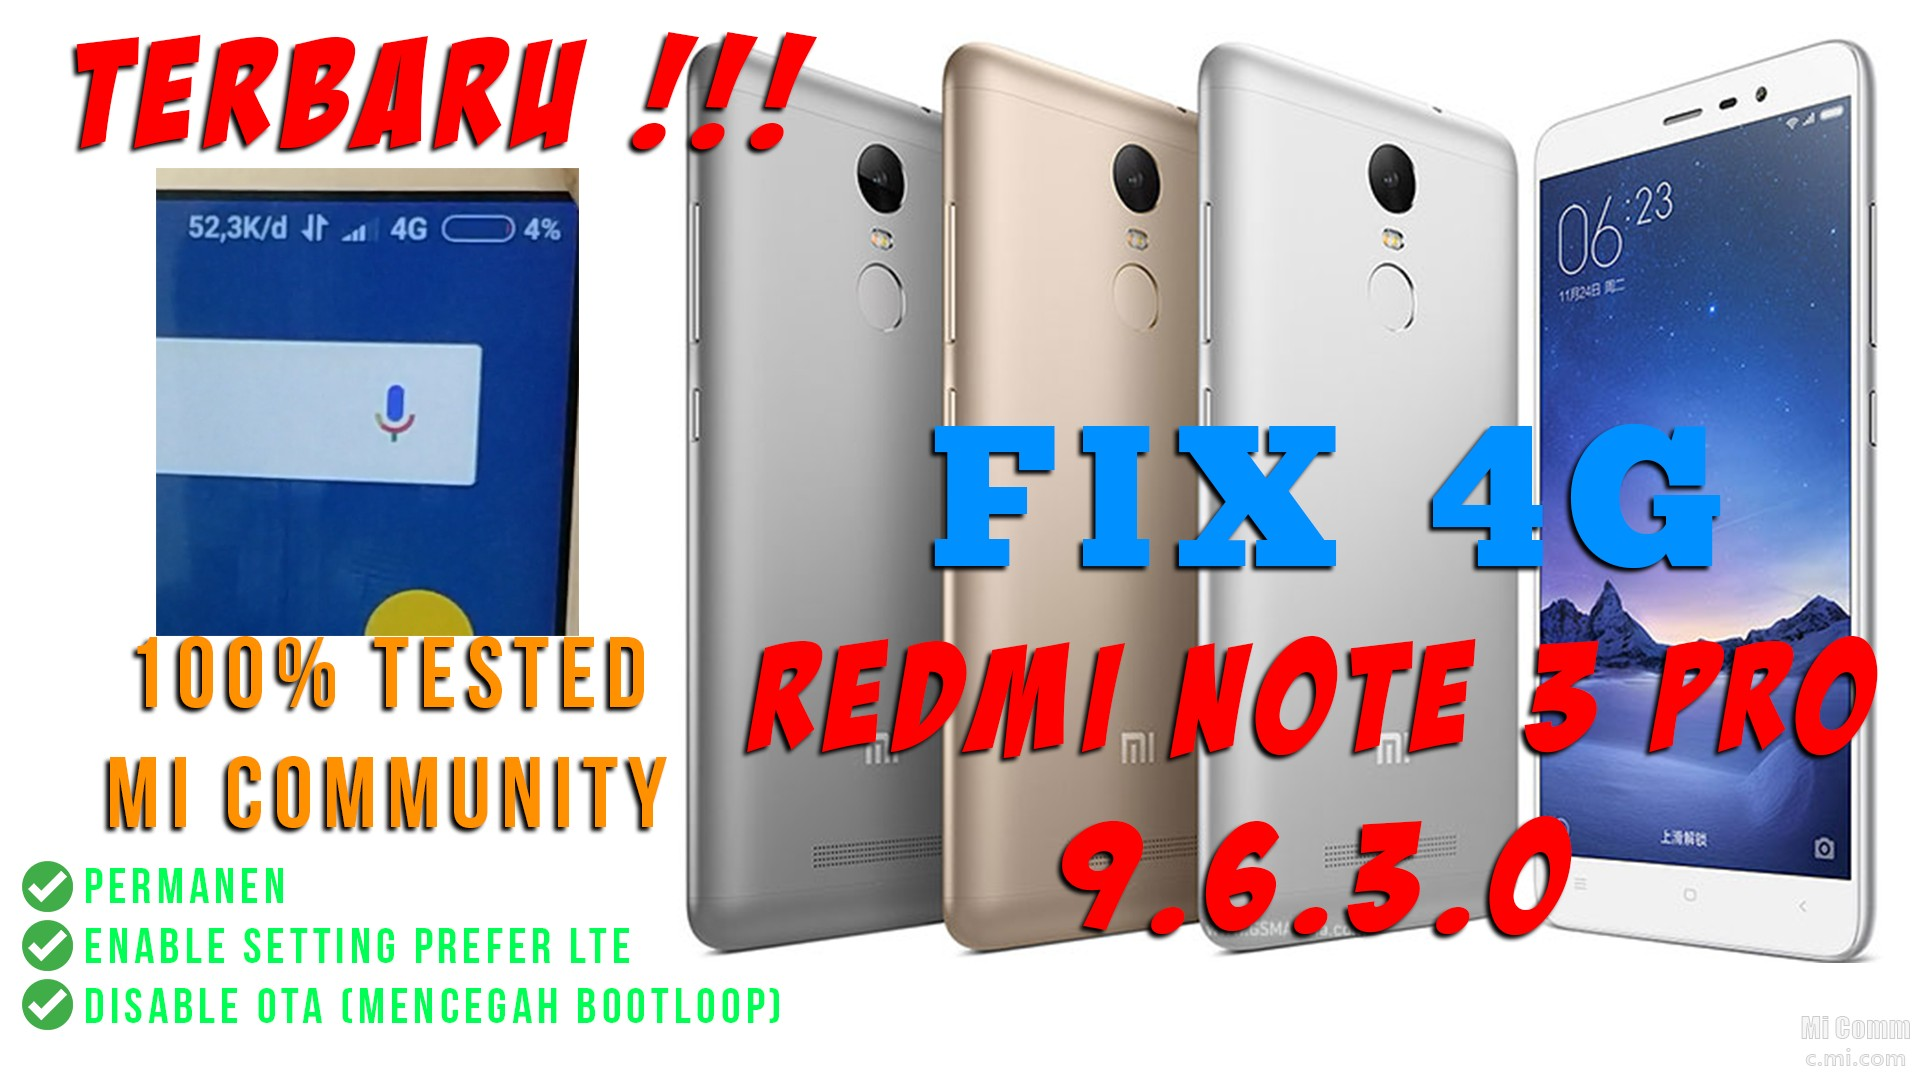 Fix 4G Redmi Note 3 Pro (Kenzo) Global Stable 9 6 3 0 [UBL